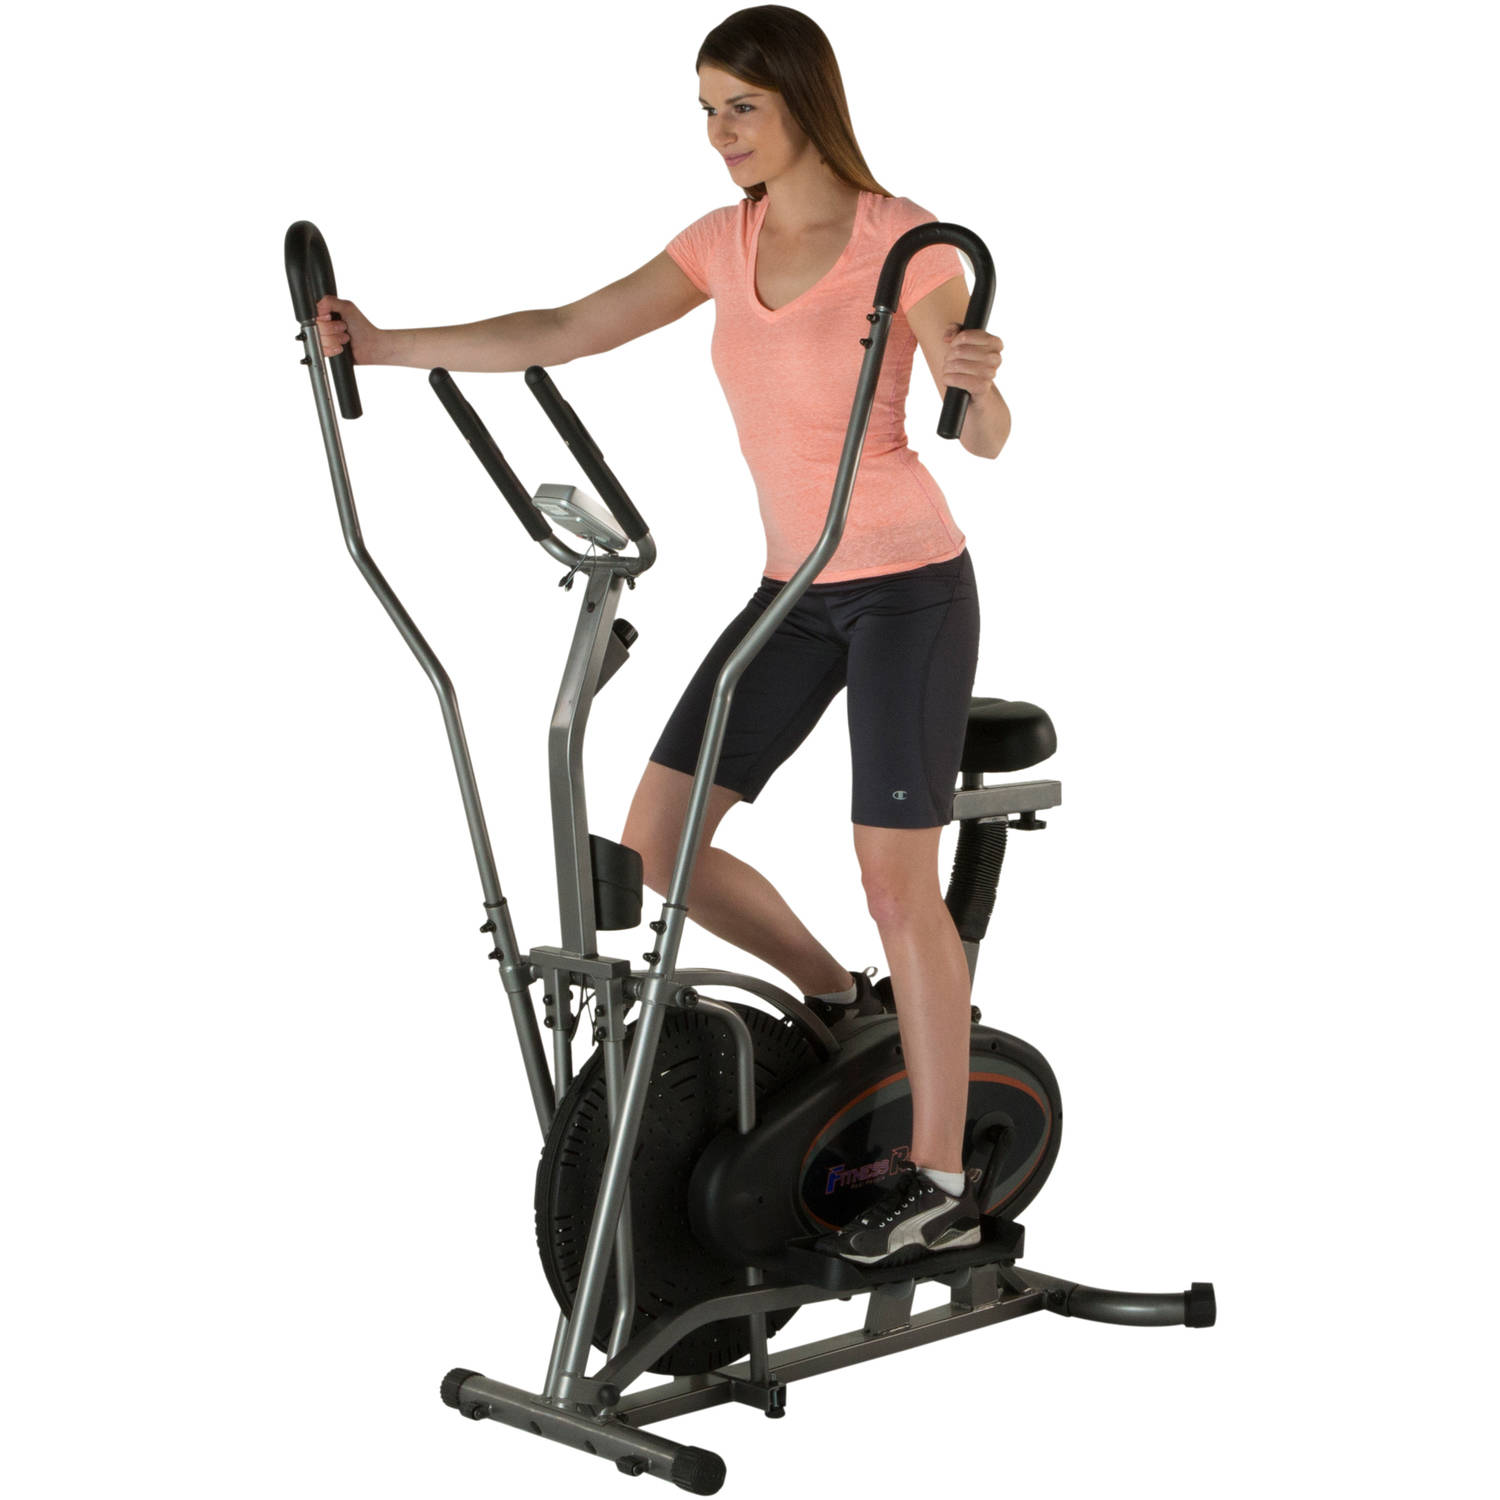 Fitness Reality E3000 2-In-1 Air Elliptical/Exercise Bike with Extended Dual Action Arms and Heart Rate Monitor